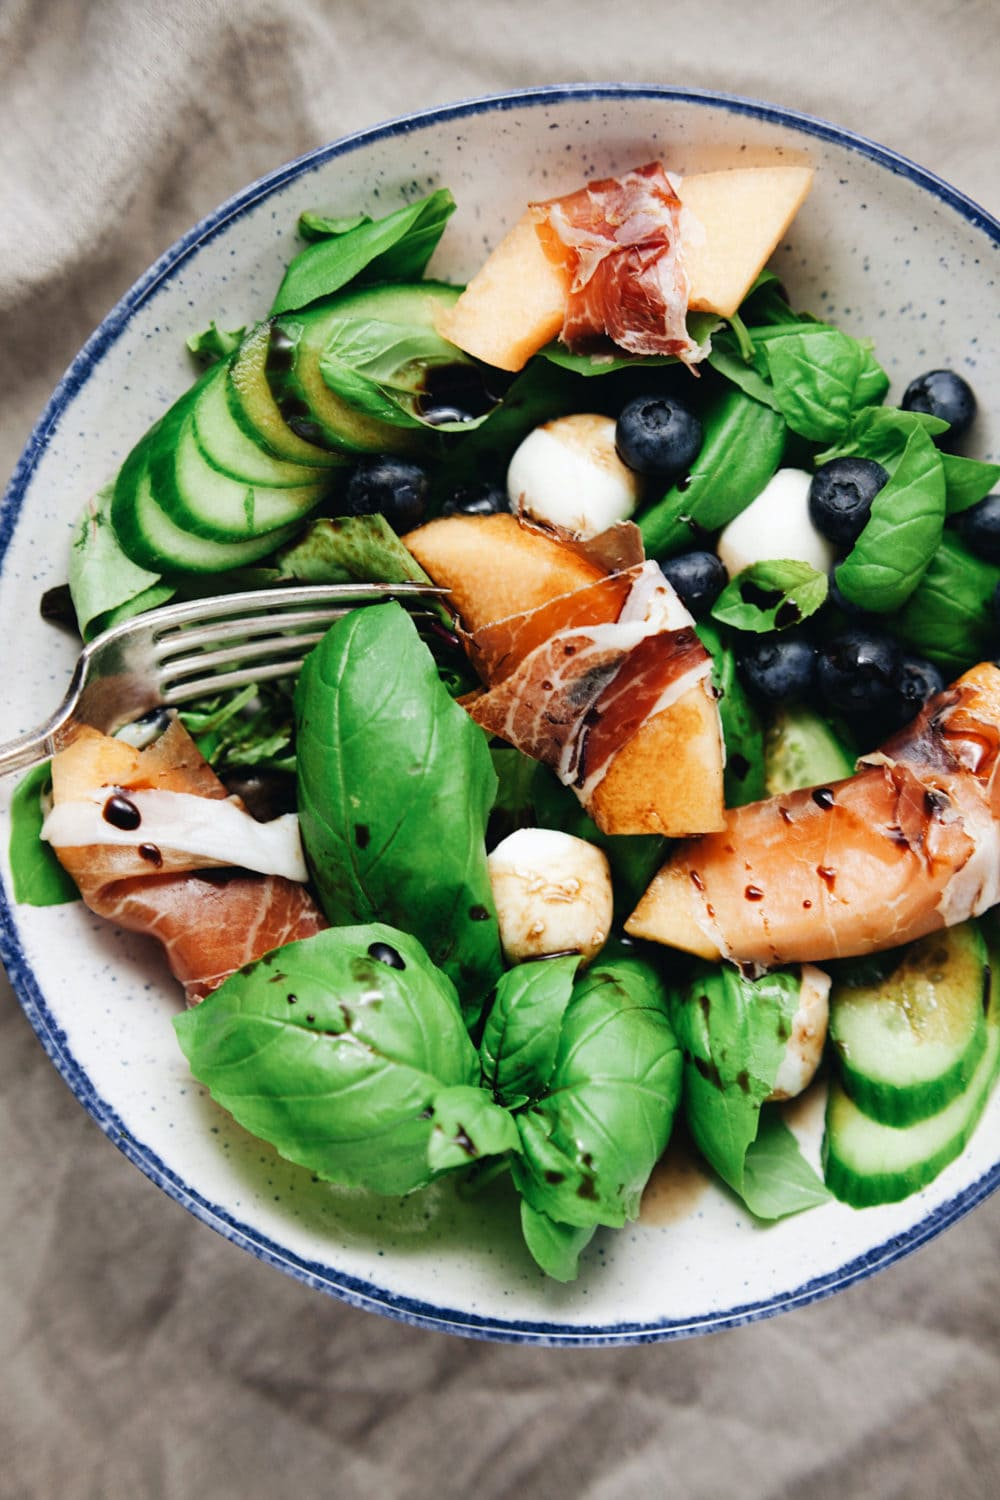 Summer Basil Salad with Prosciutto & Melon. So refreshing and delicious! | asimplepalate.com